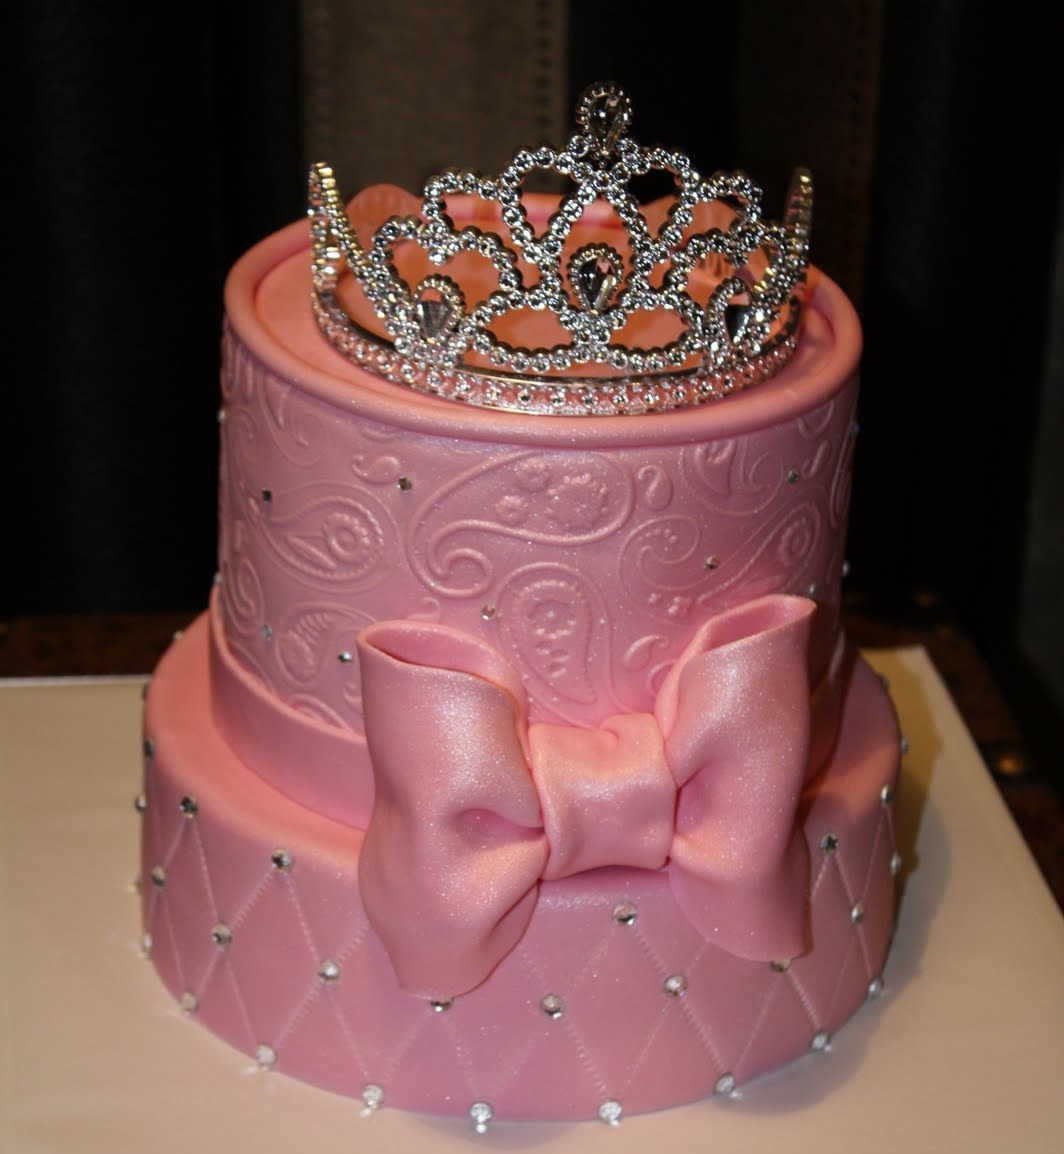 Gateau De Princesse Gateaux Theme Princesse